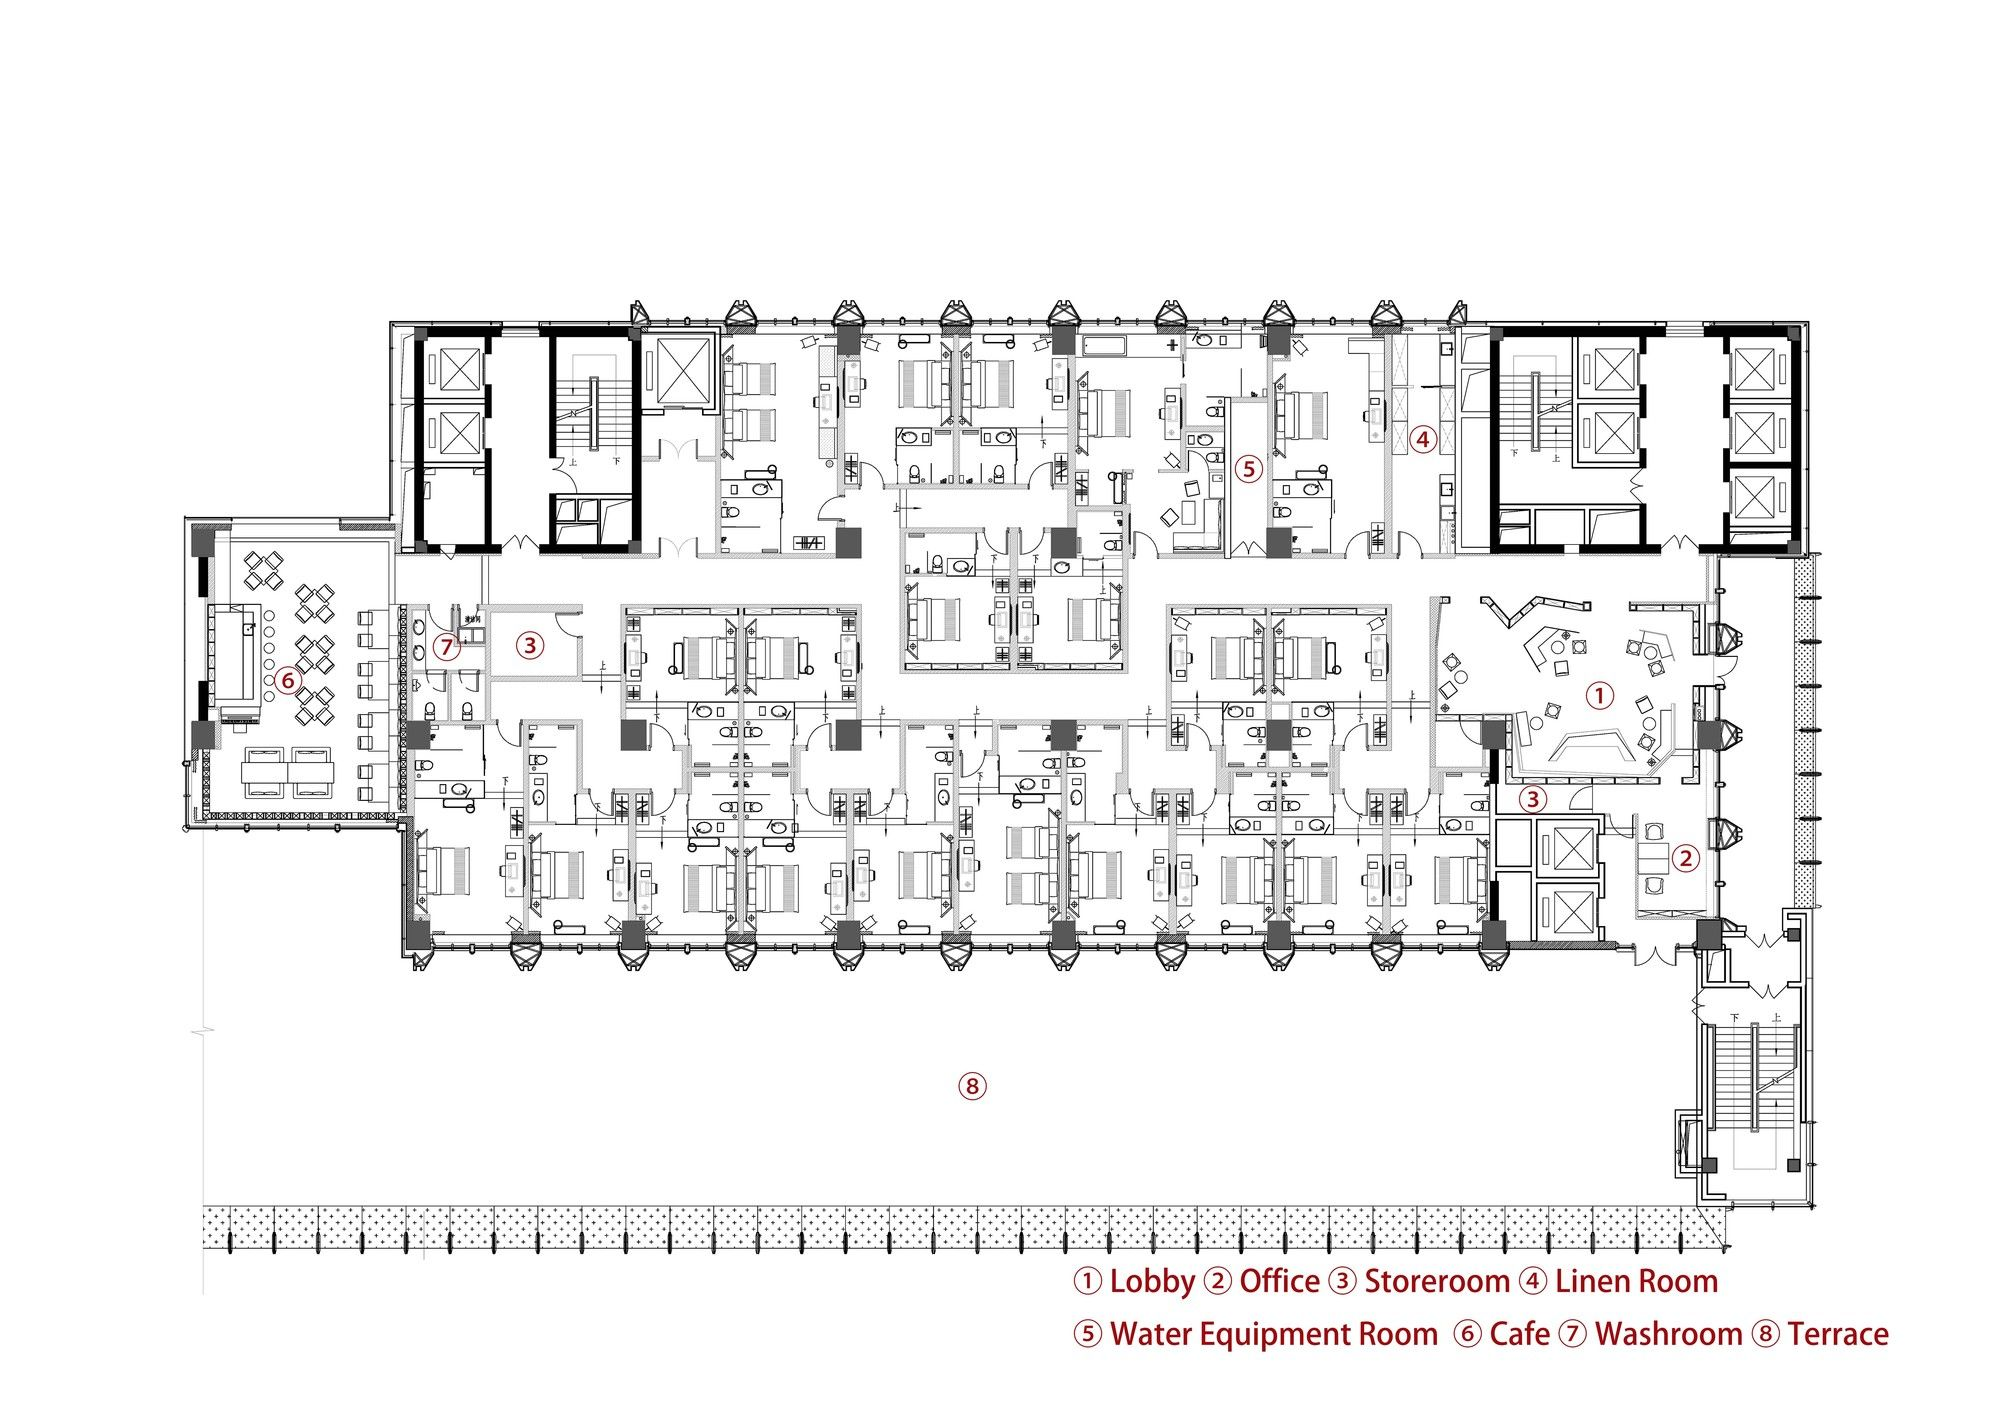 Gallery Of Wheat Youth Arts Hotel X Living 27 Hotel Floor Plan How To Plan